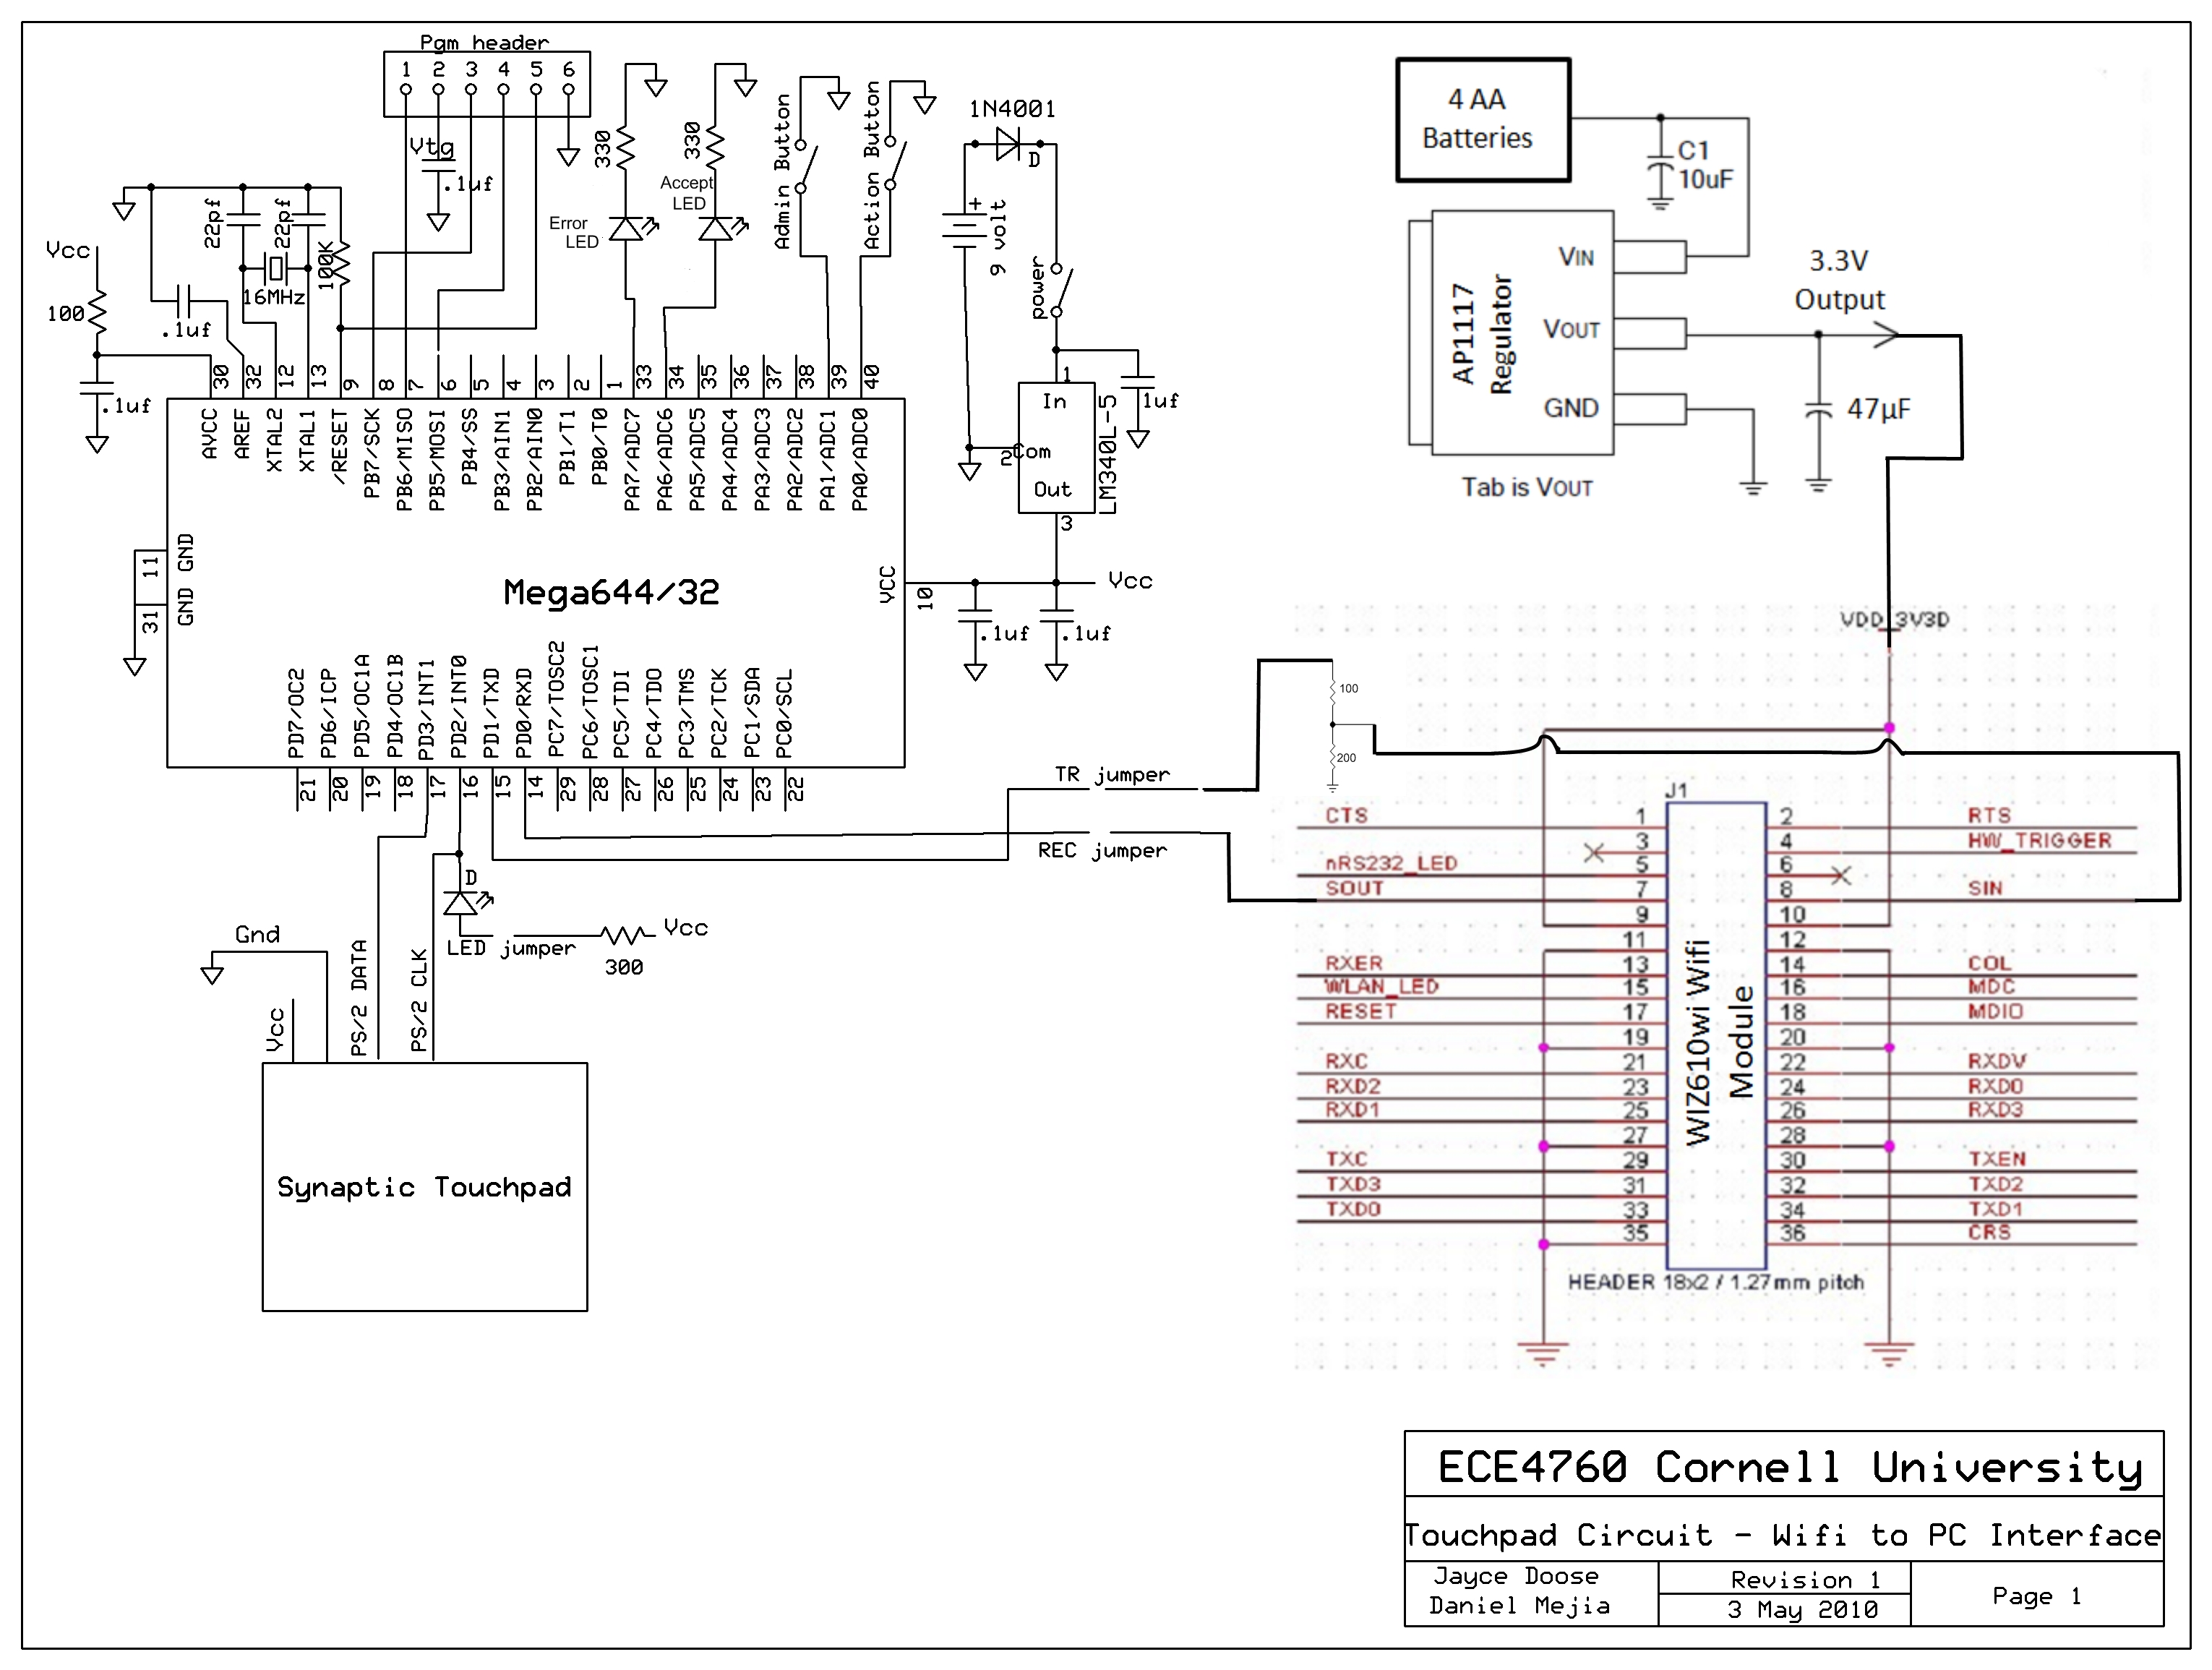 Wiring Diagram For Stinger Uv40 And Schematics Schematic Circuit Usb Wifi Dongle Ceiling Fans With Lights